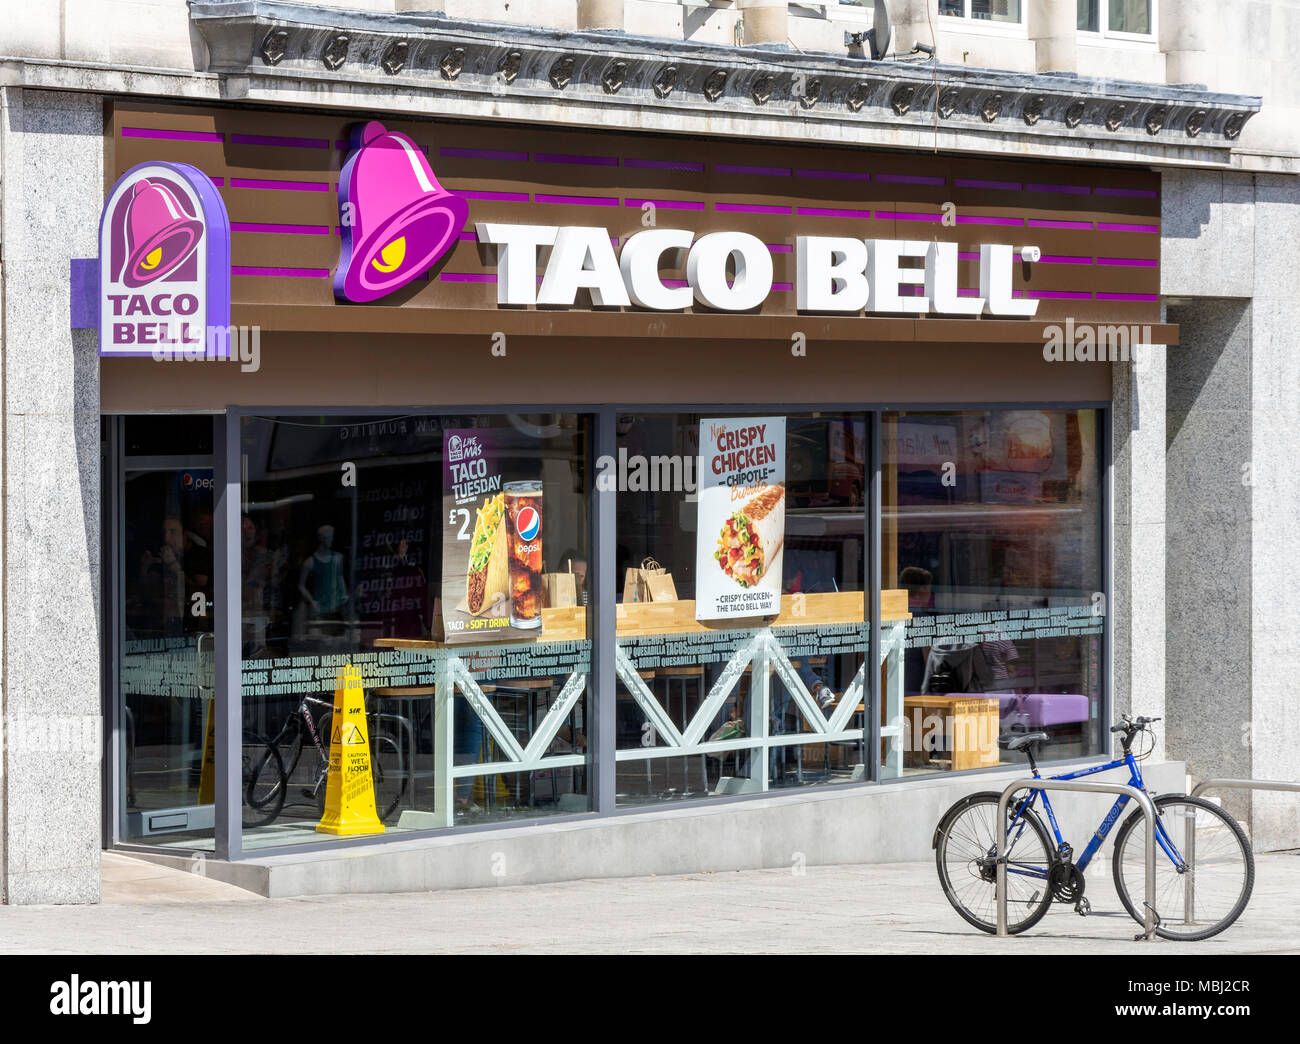 Taco Bell Mexican fast-food restaurant, Hanover Buildings, Southampton, Hampshire, England, United Kingdom - Stock Image